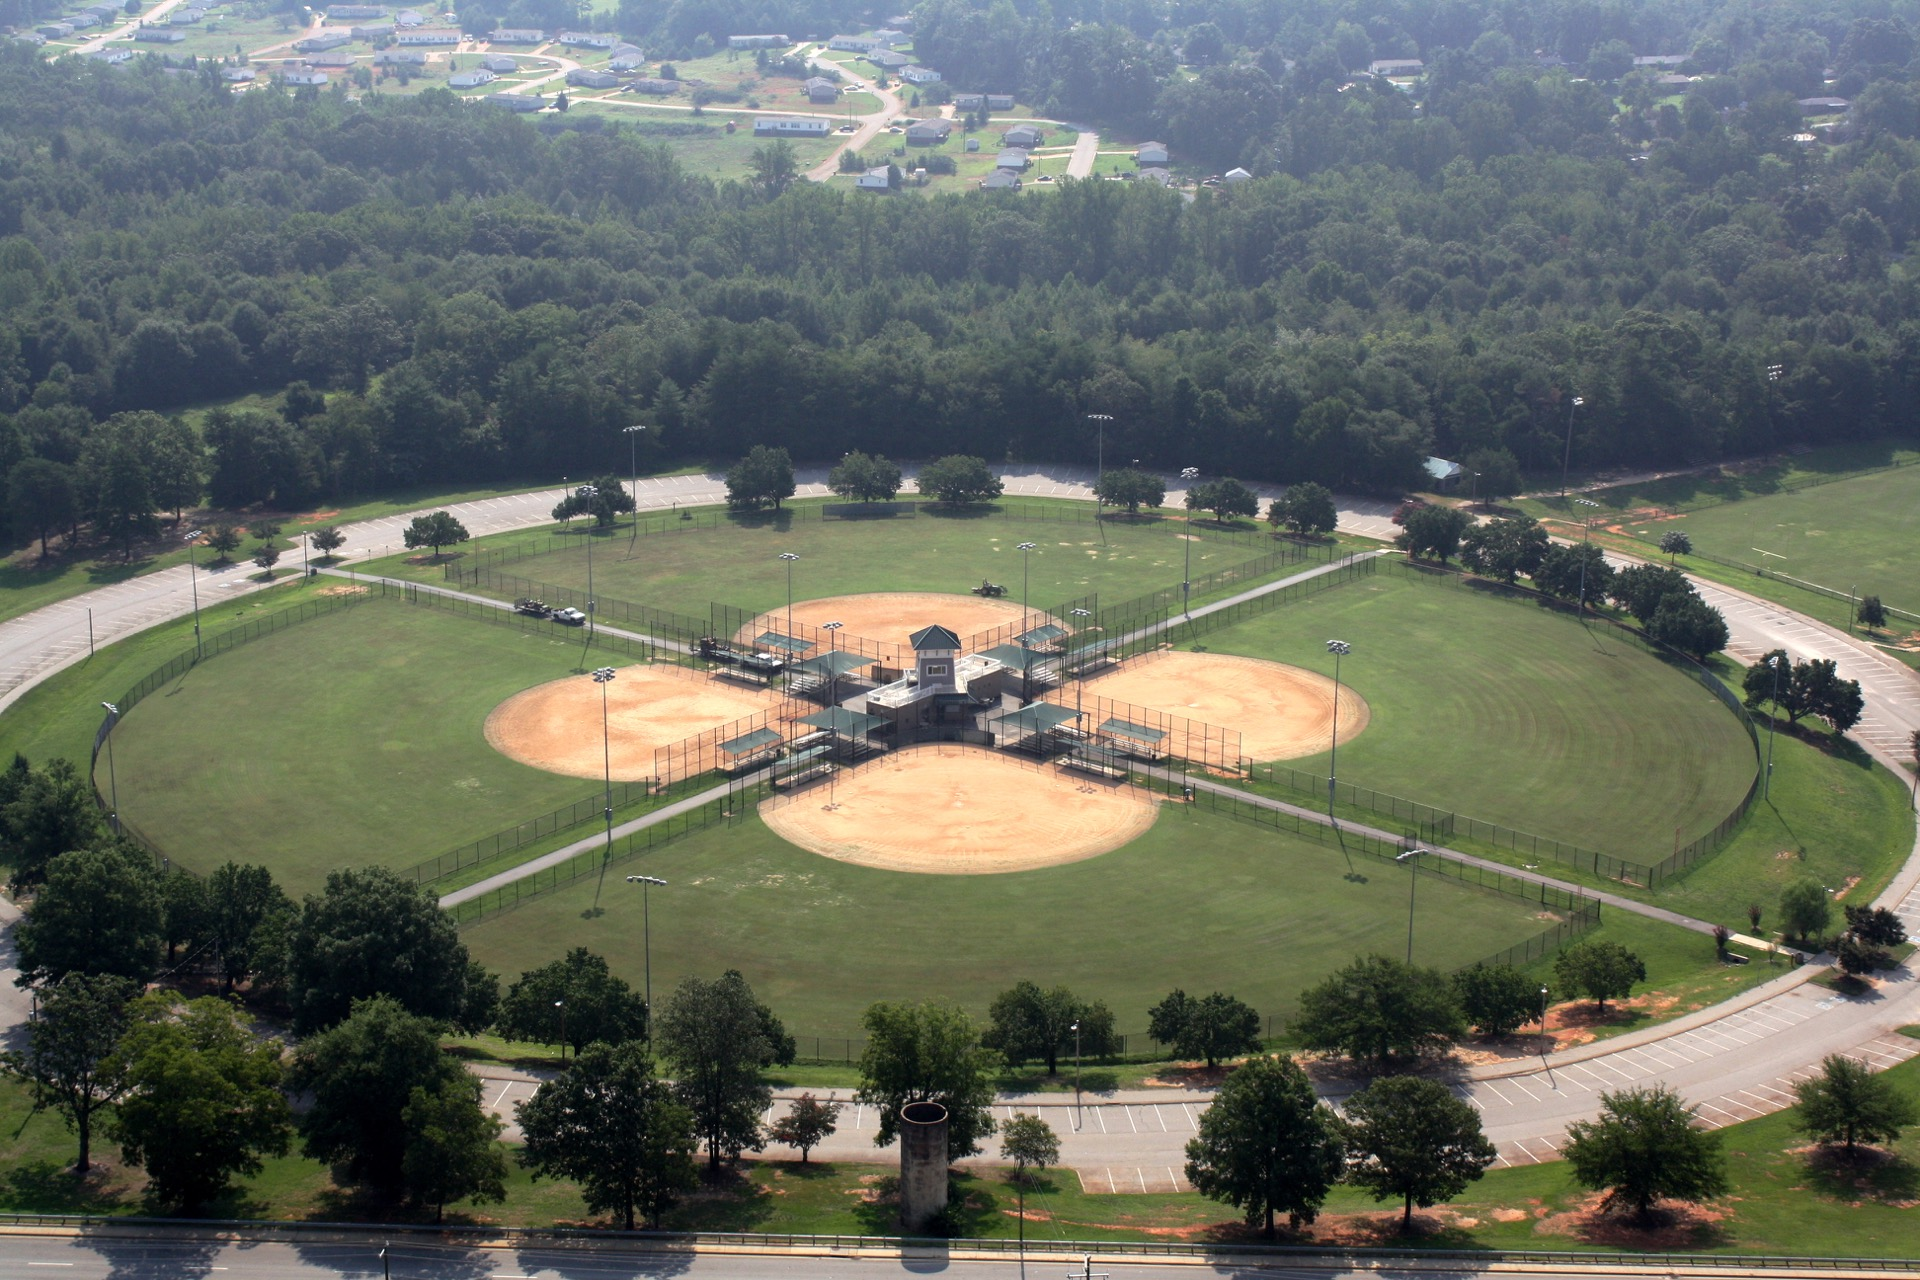 lakeside park aerial view